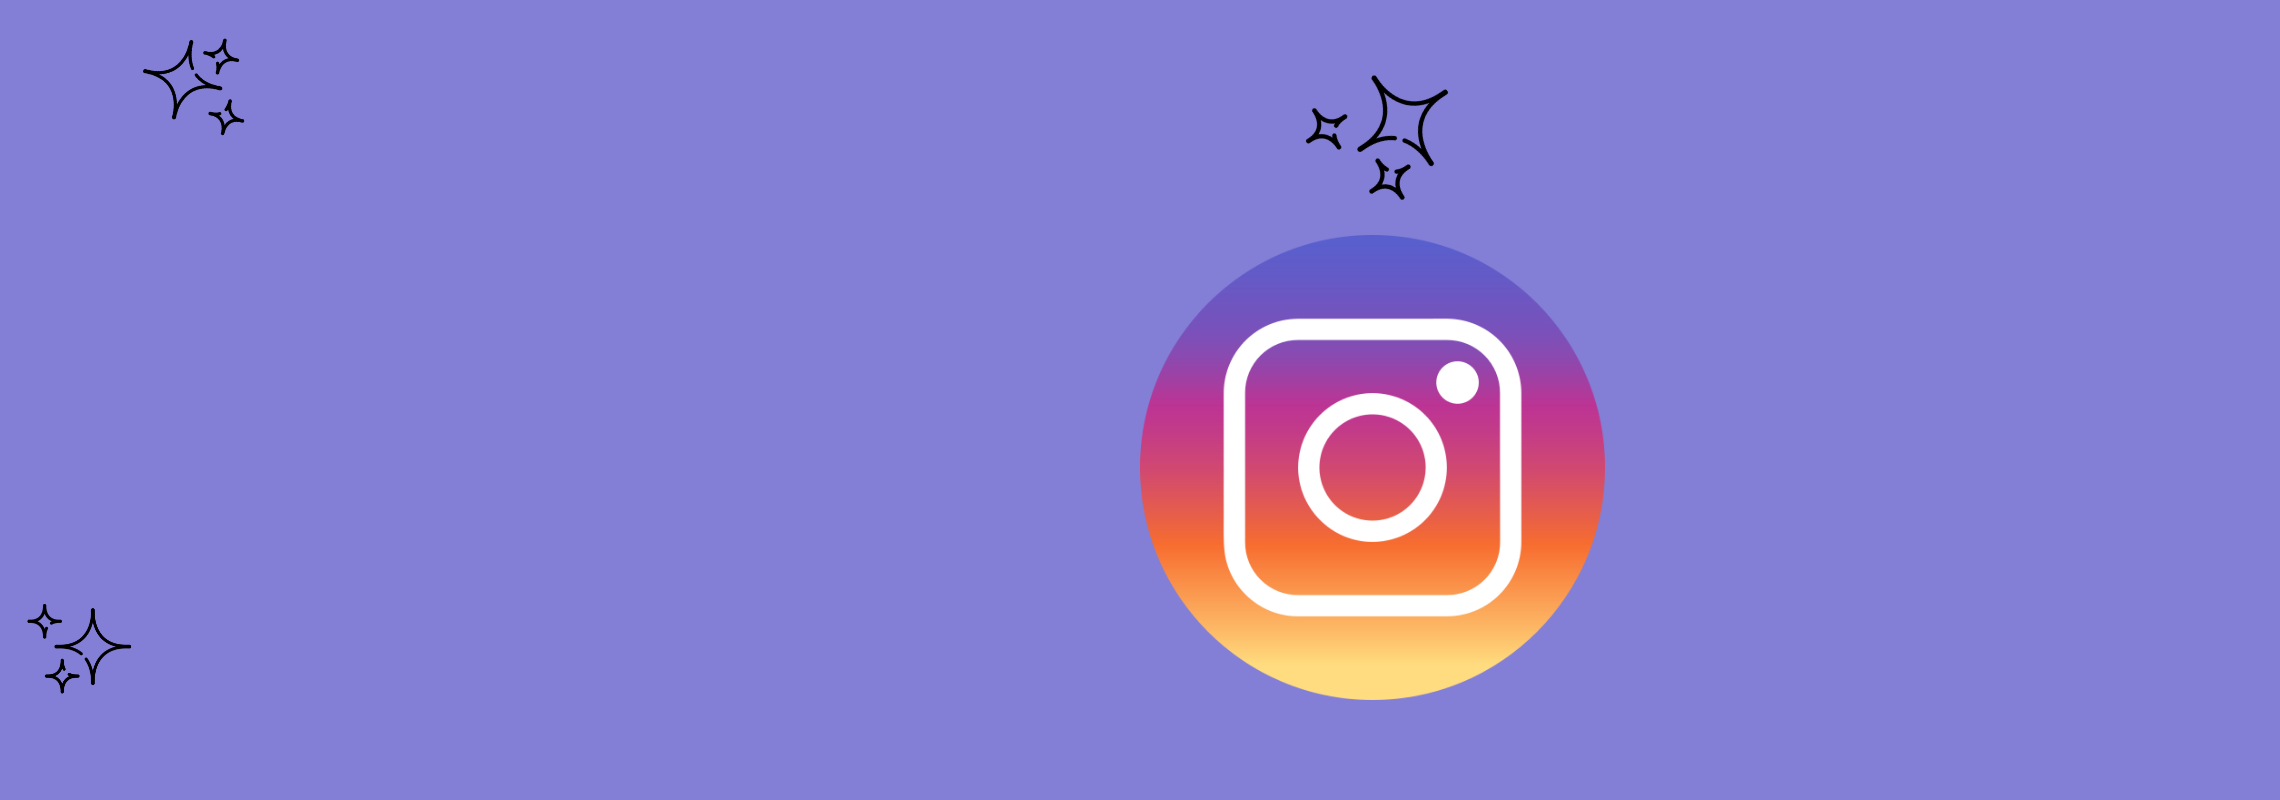 Instagram tracker app auto forward